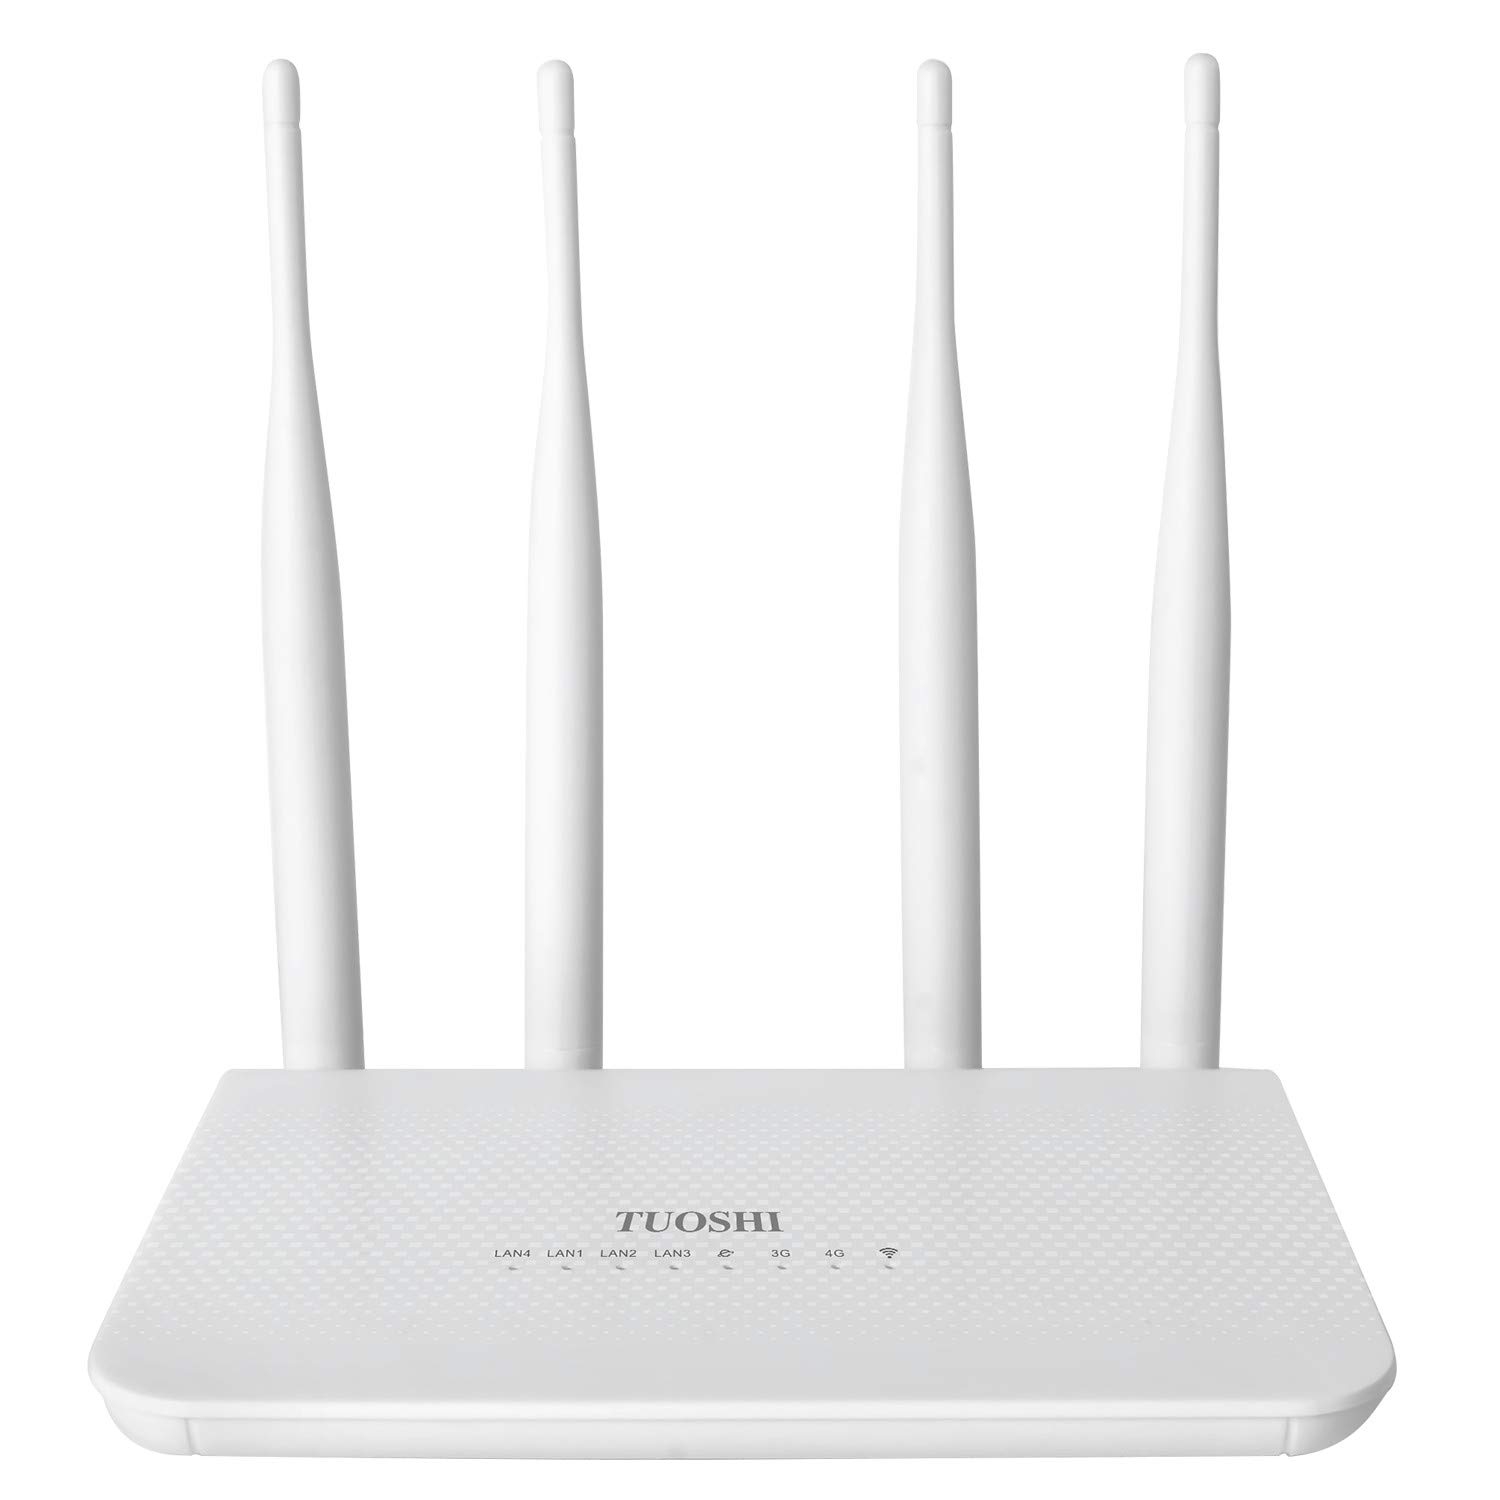 TUOSHI 4G LTE CPE | Unlocked 4G Wireless Router with SIM Card Slot-300Mbps WiFi Router | WiFi Hotspot, Support T-Mobile AT&T (4 Antenna) by TUOSHI